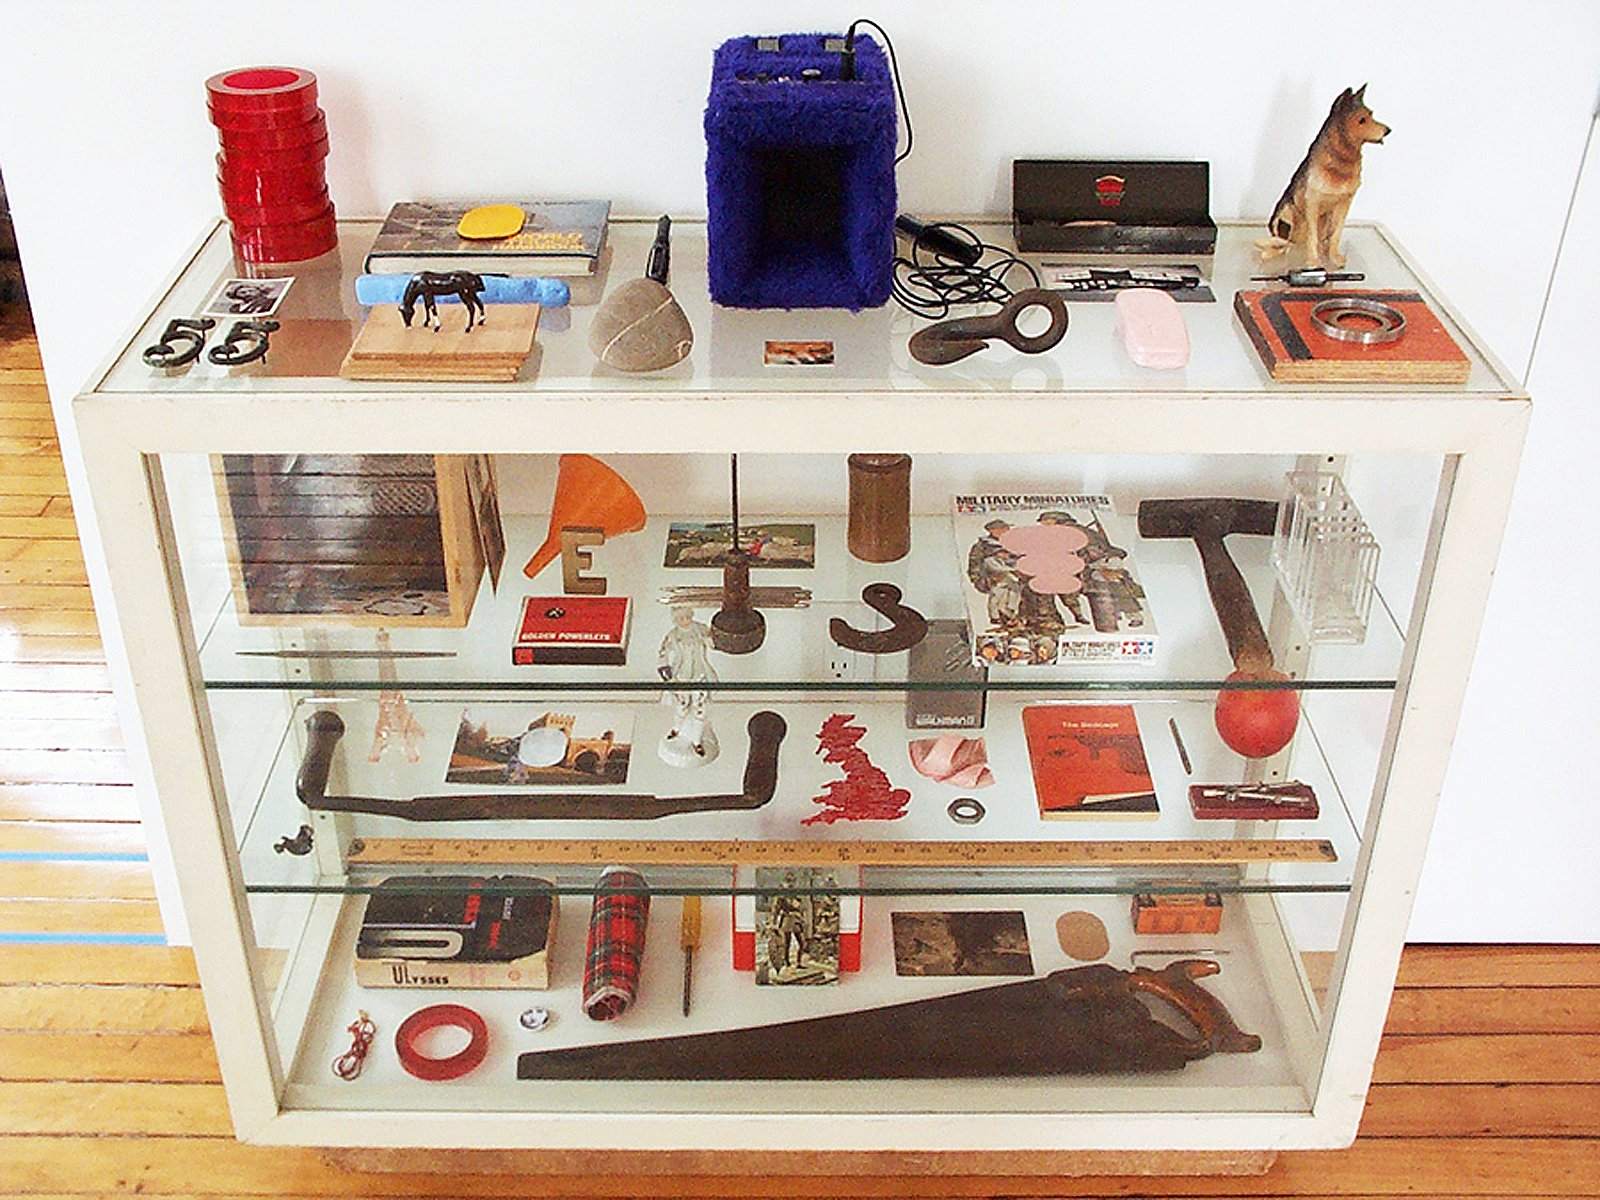 A white display case full of objects including saws, postcards and a dog figurine.